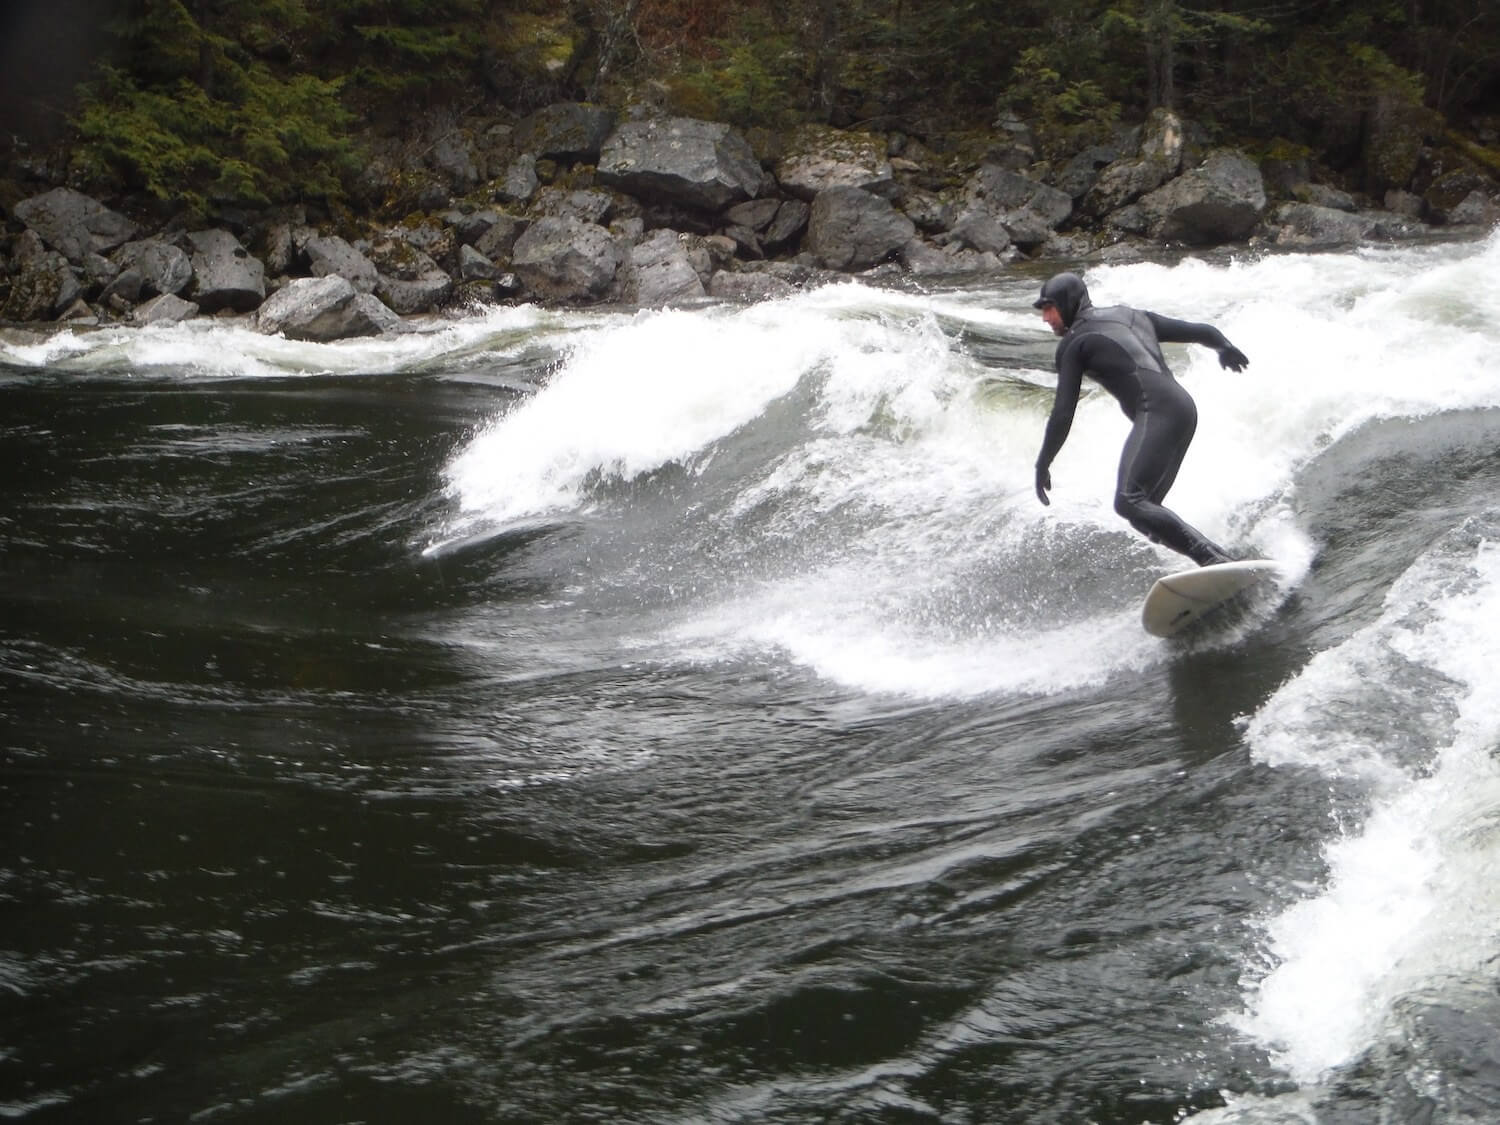 surfer wearing wetsuit taking on the Lochsa Pipeline near Lowell Idaho